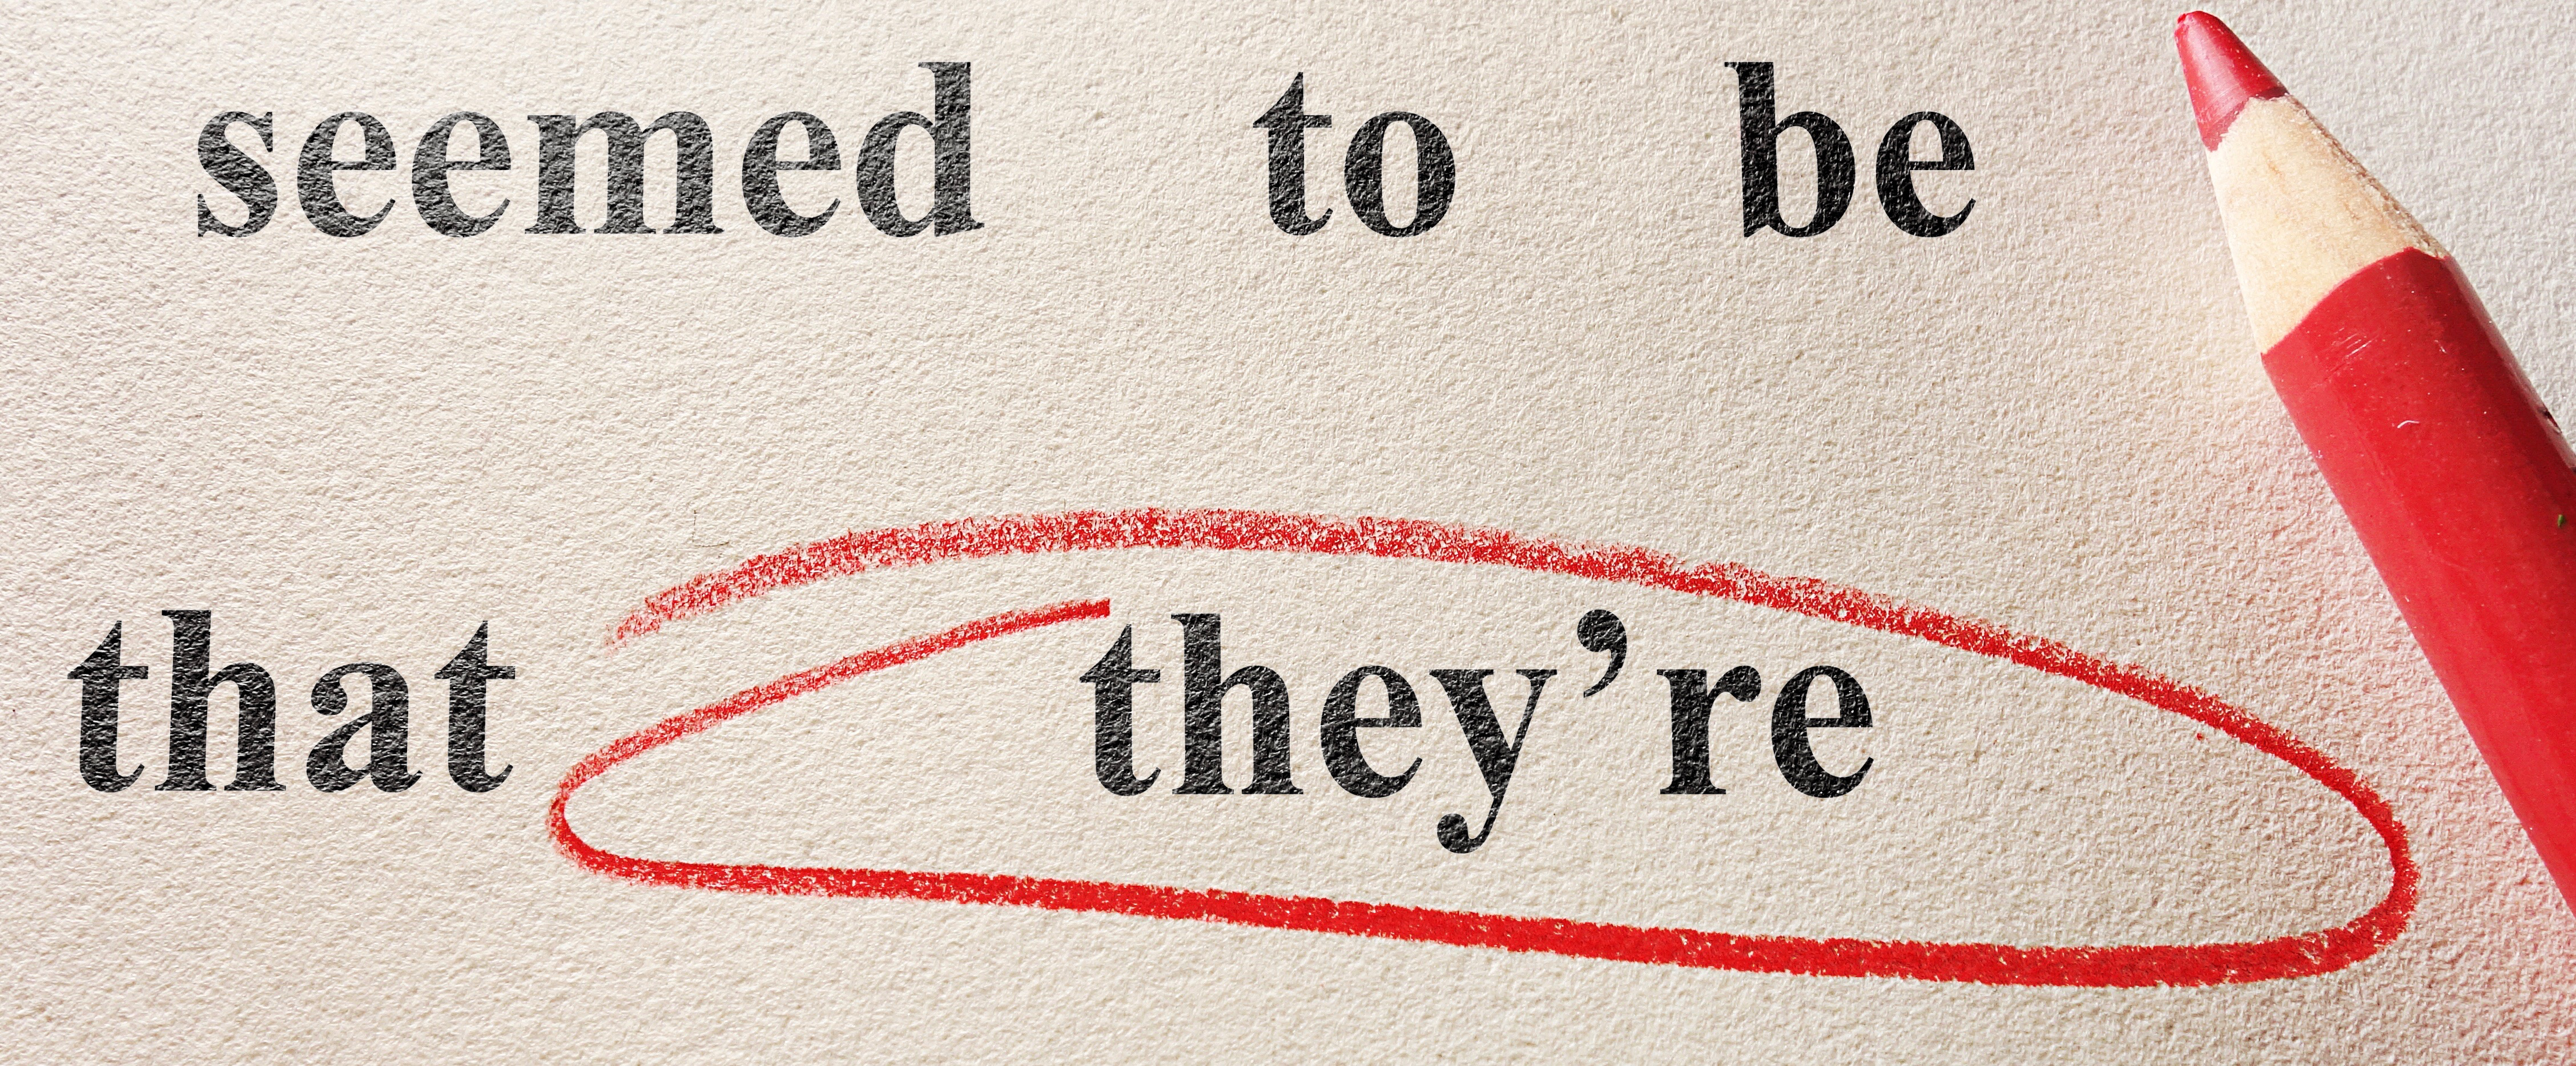 grammar police 30 of the most common grammatical errors we all grammar police 30 of the most common grammatical errors we all need to stop making